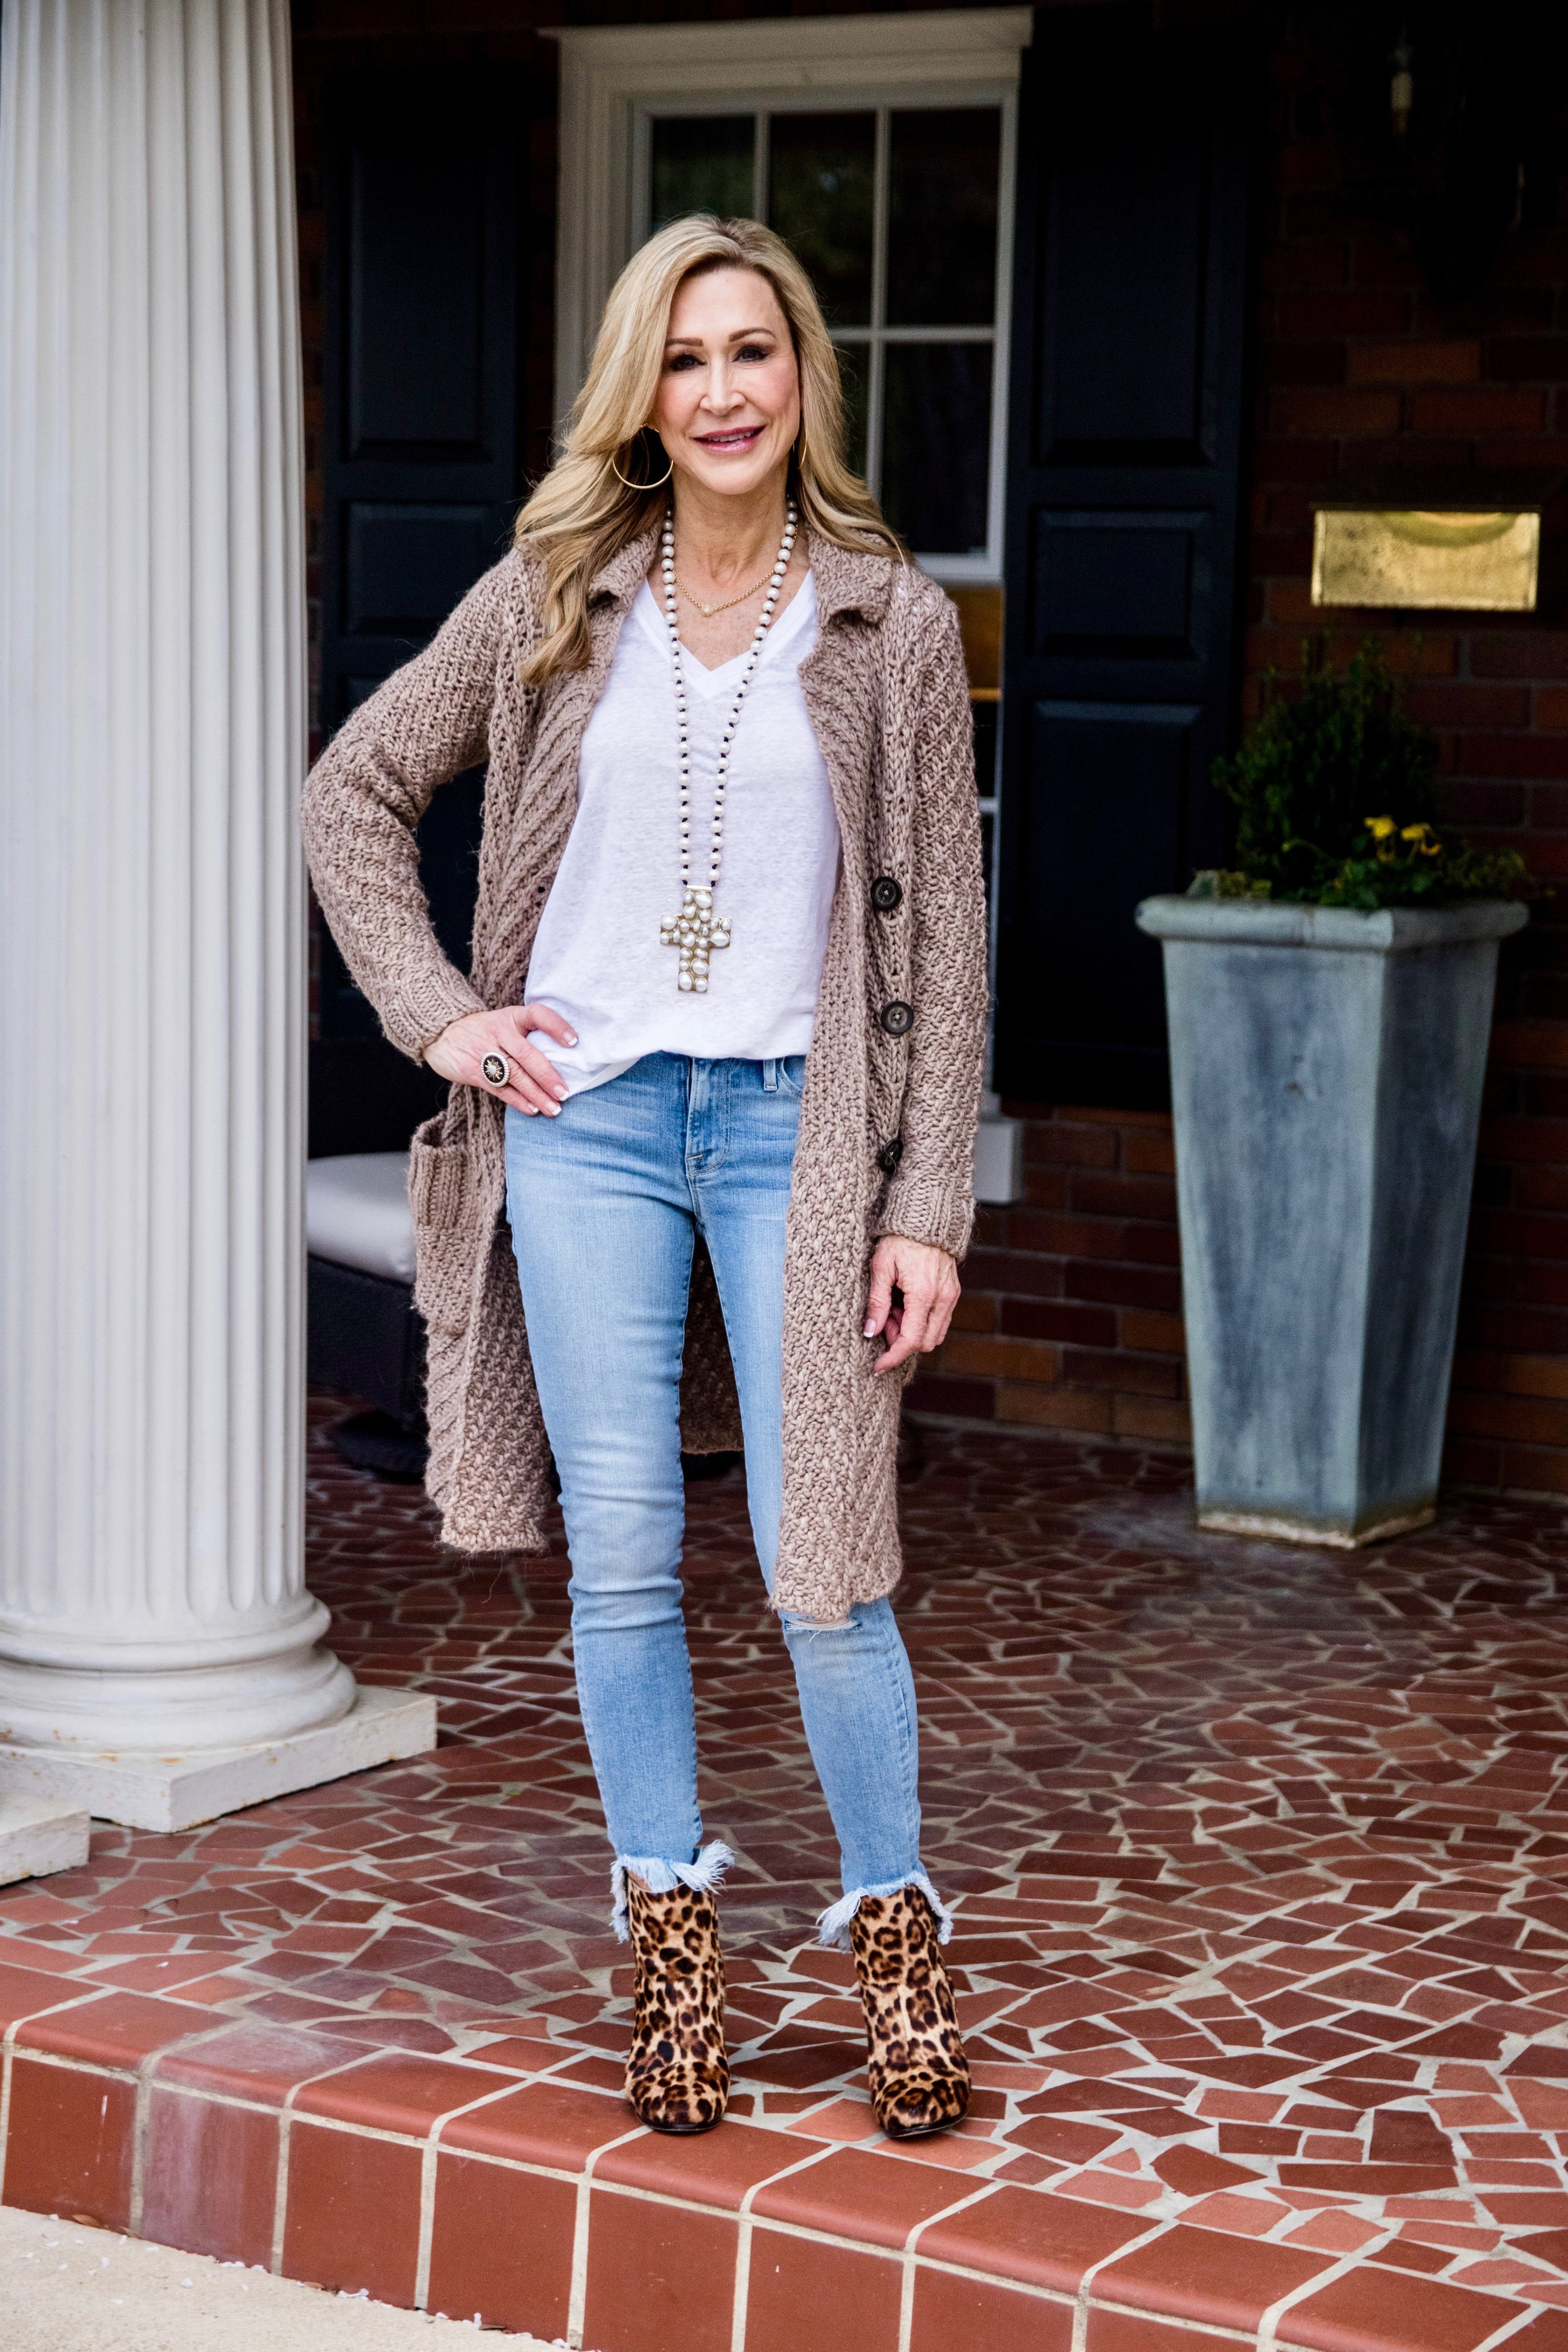 Cardigan & Jeans - Crazy Blonde Style